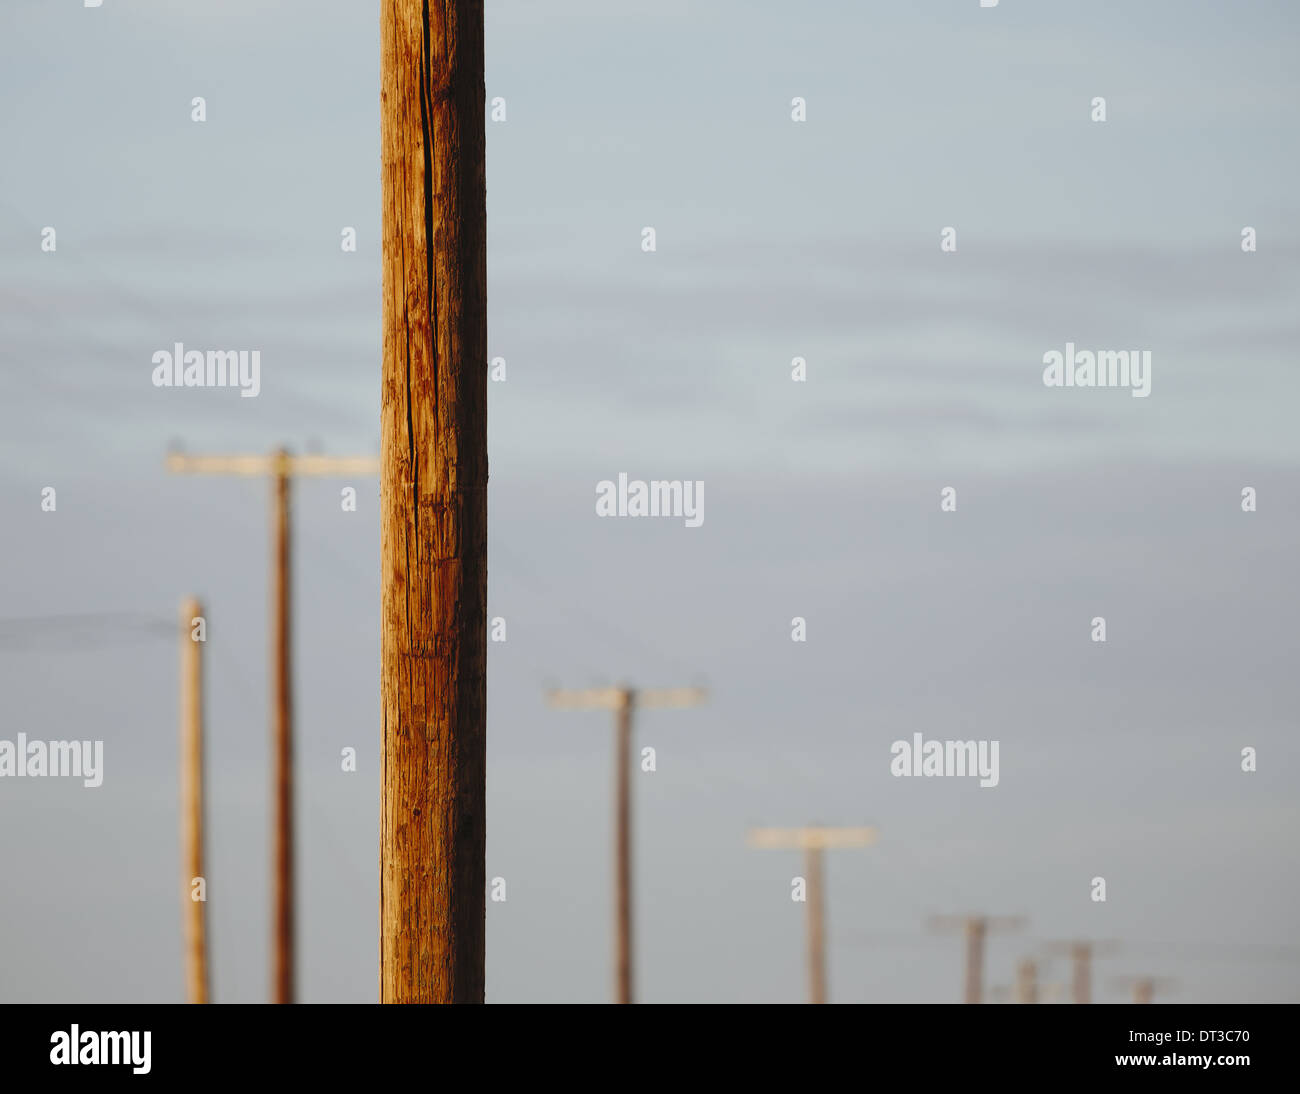 Telephone poles and power lines in a row, at Belridge in California. - Stock Image